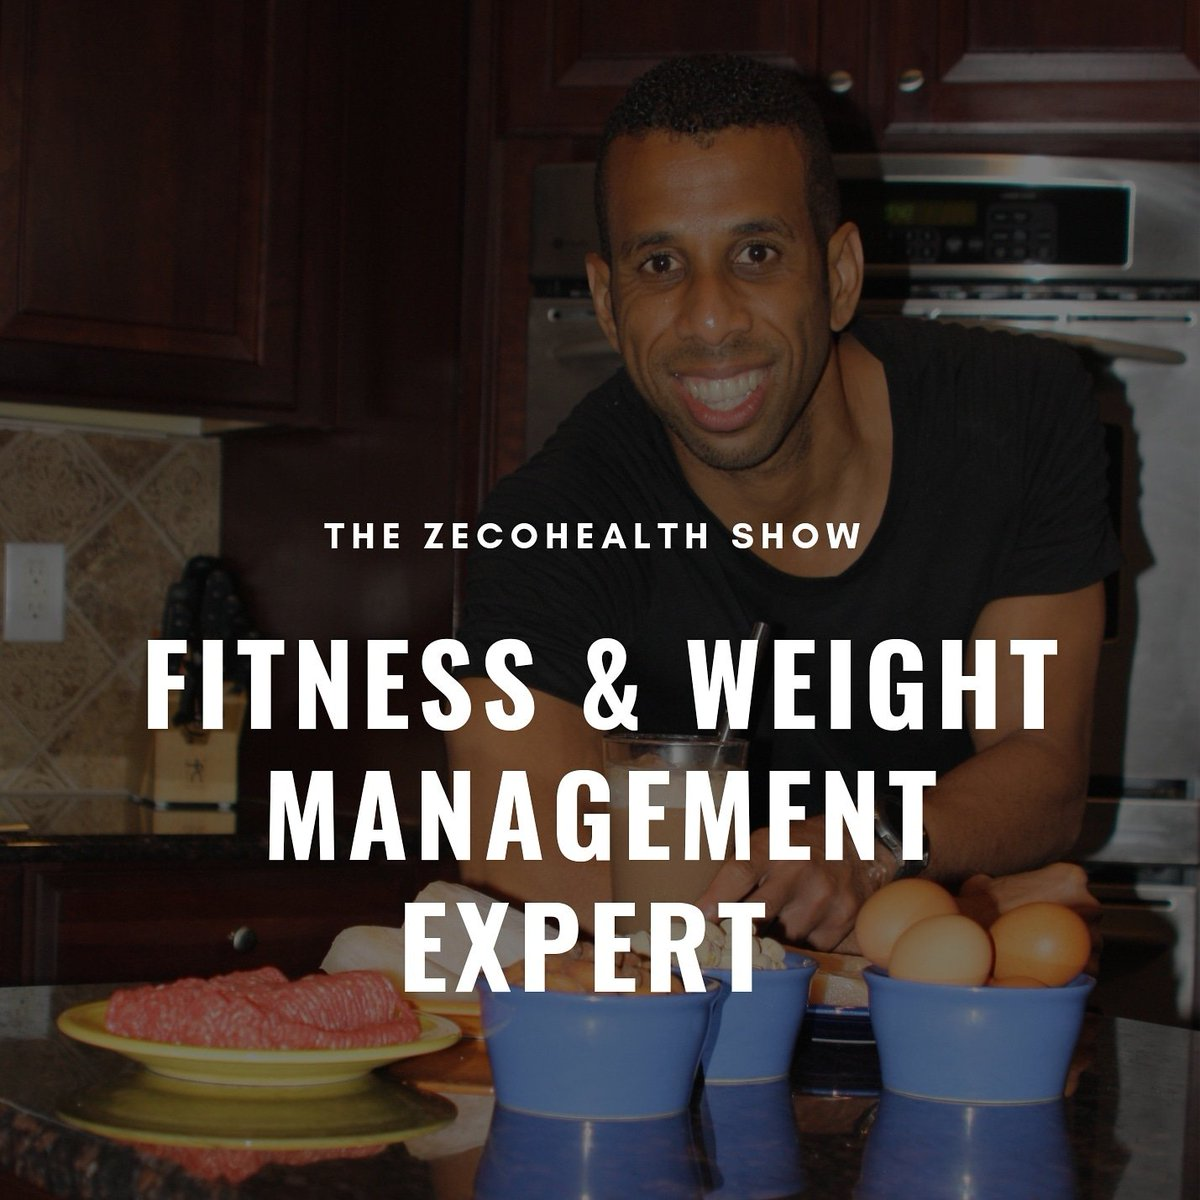 Weight Management is related to stress management   #podcast #Health #weightloss #WritingCommunity #writing